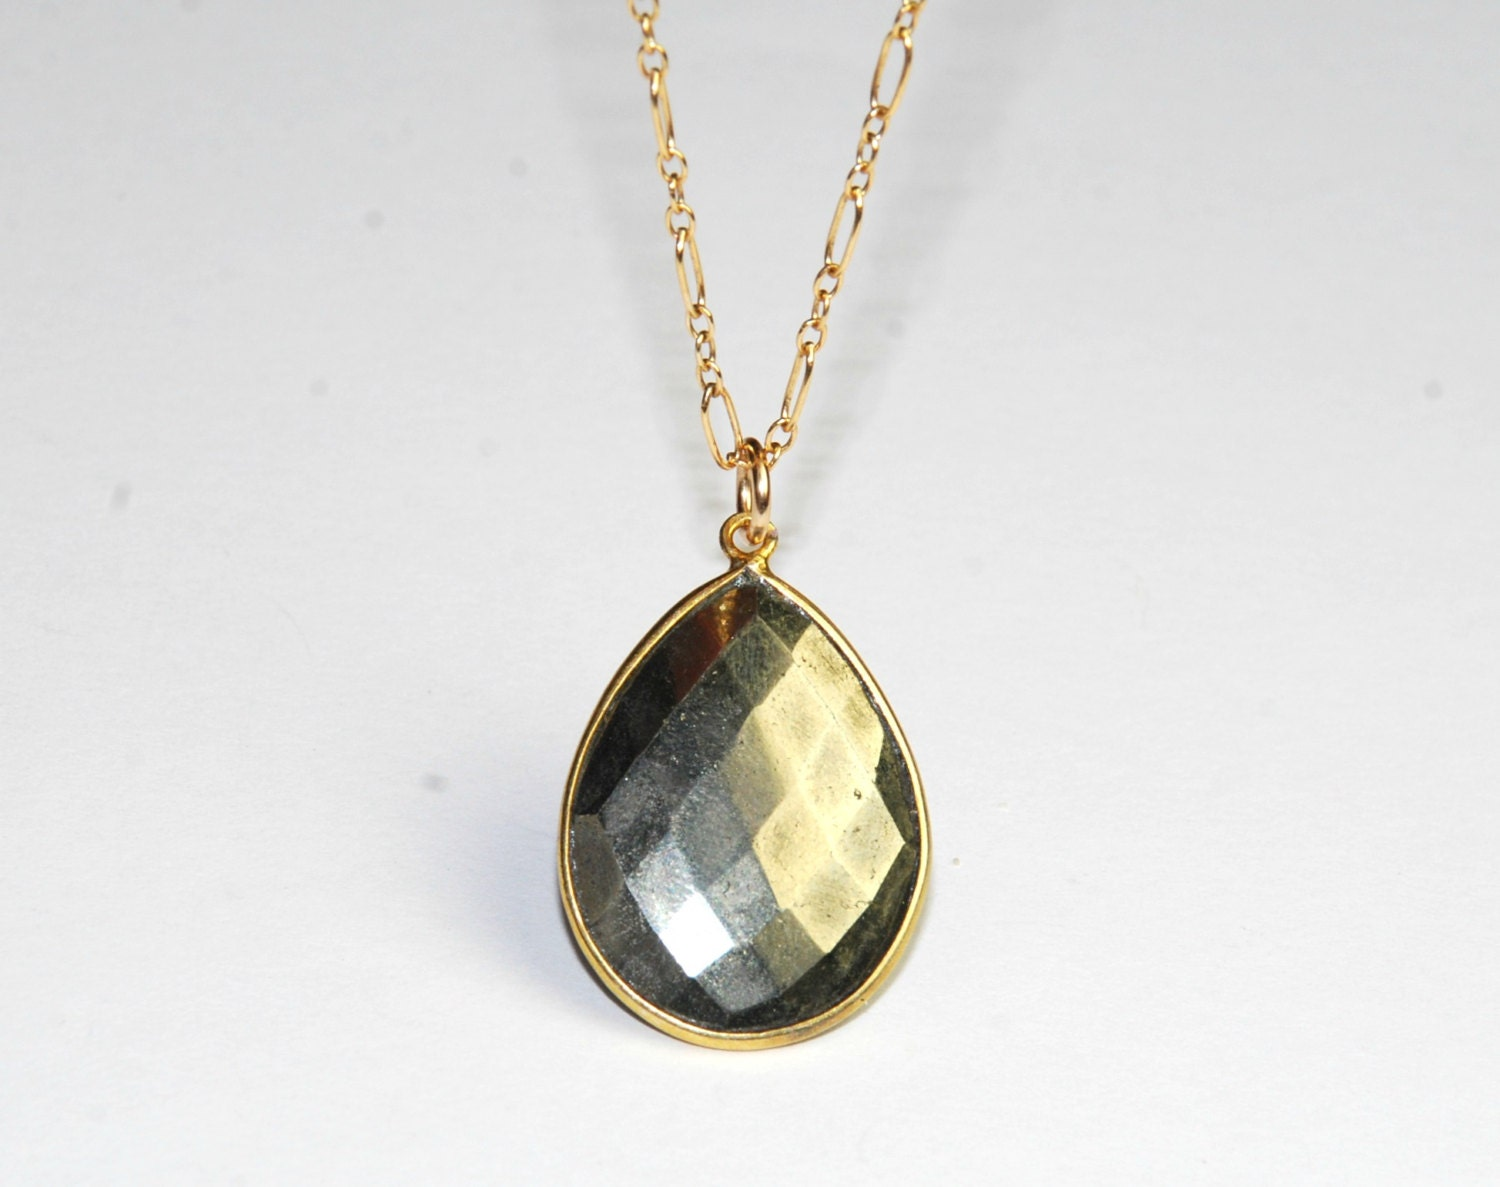 pyrite necklace metallic pendant gold necklace by eleven13